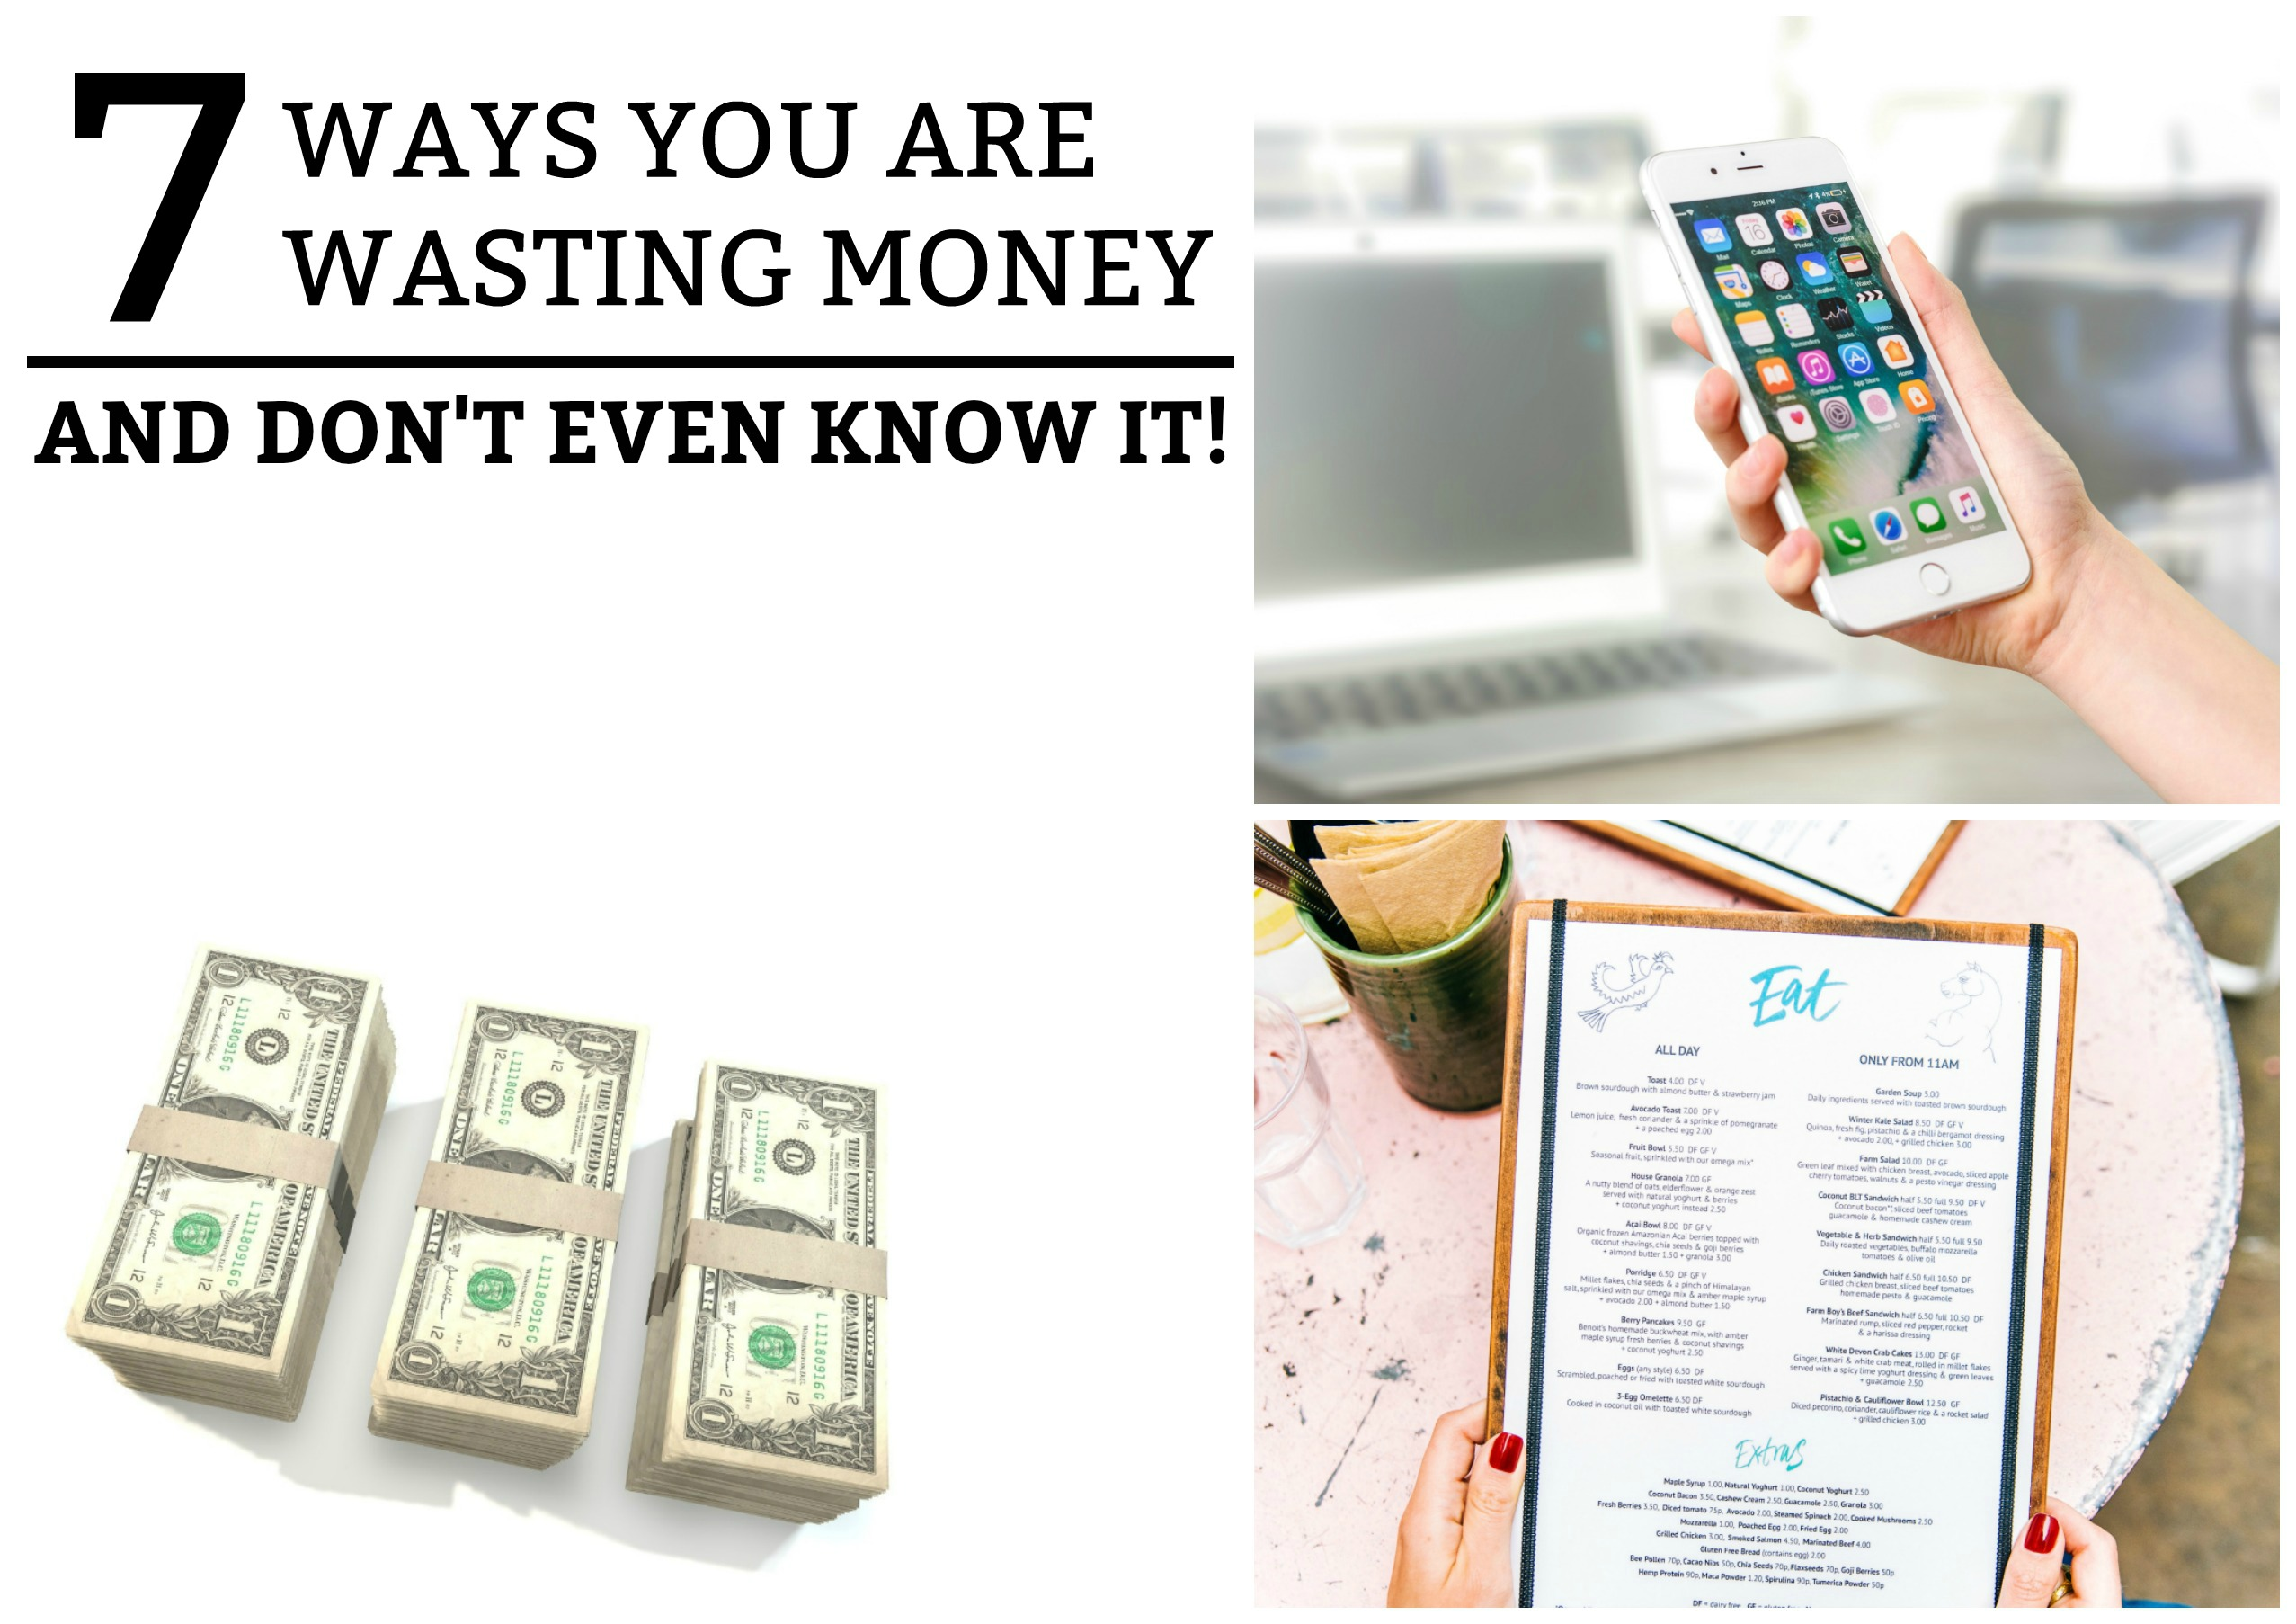 7 Ways You Are Wasting Money and Don't Even Know It! is a guide to help you realize the unnecessary expenses that you may not realize you are paying. www.tradingaverage.com